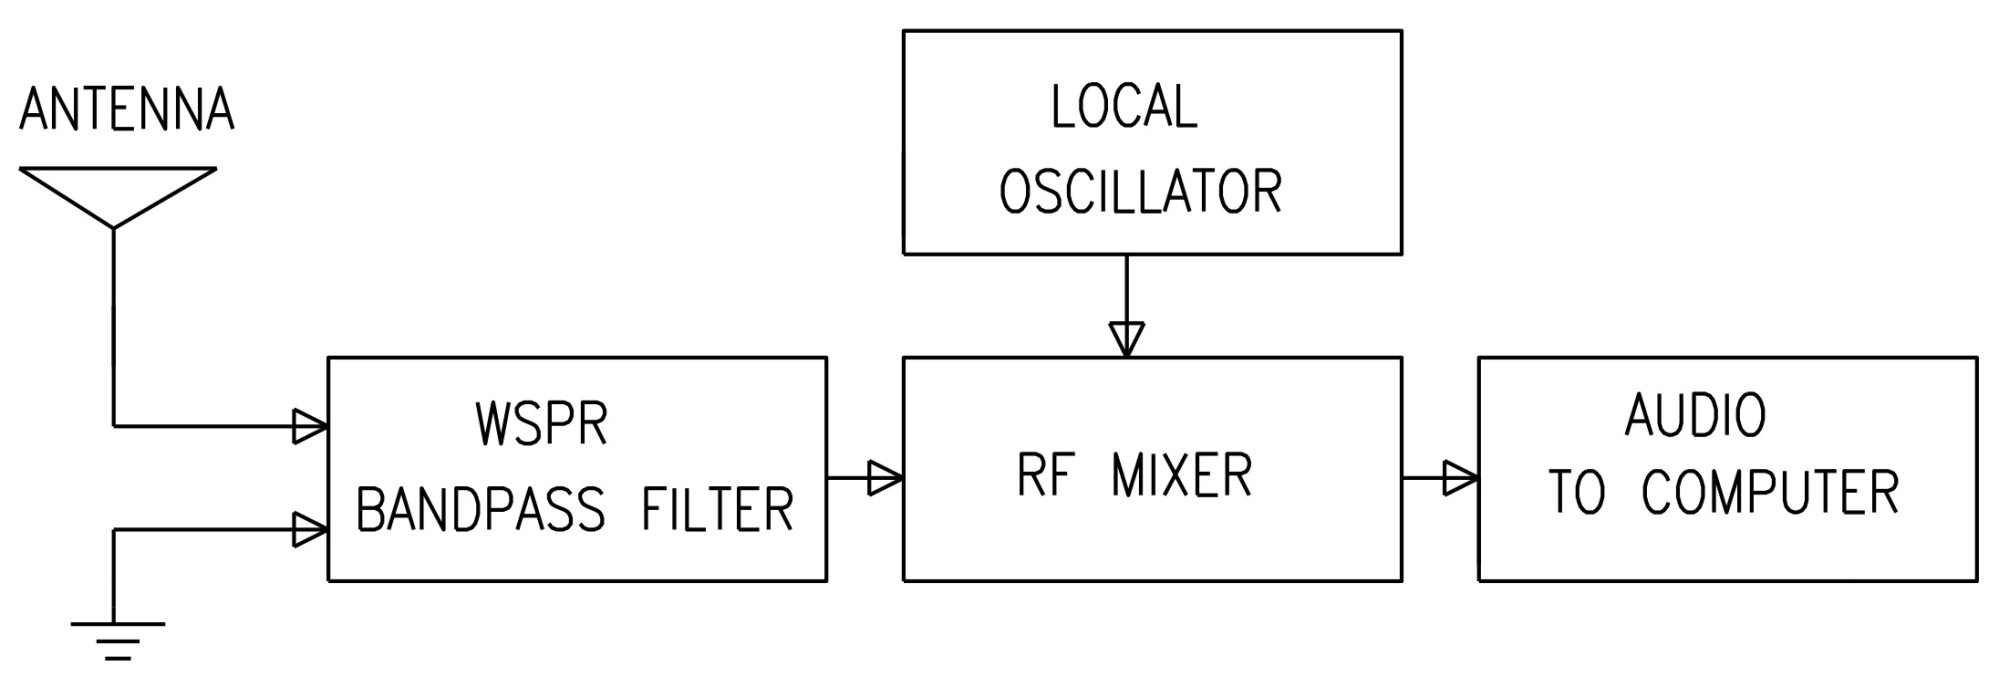 hight resolution of dc receivers convert radio signals to audio directly without any intermediate stages a block diagram of the proposed radio is shown in figure 4